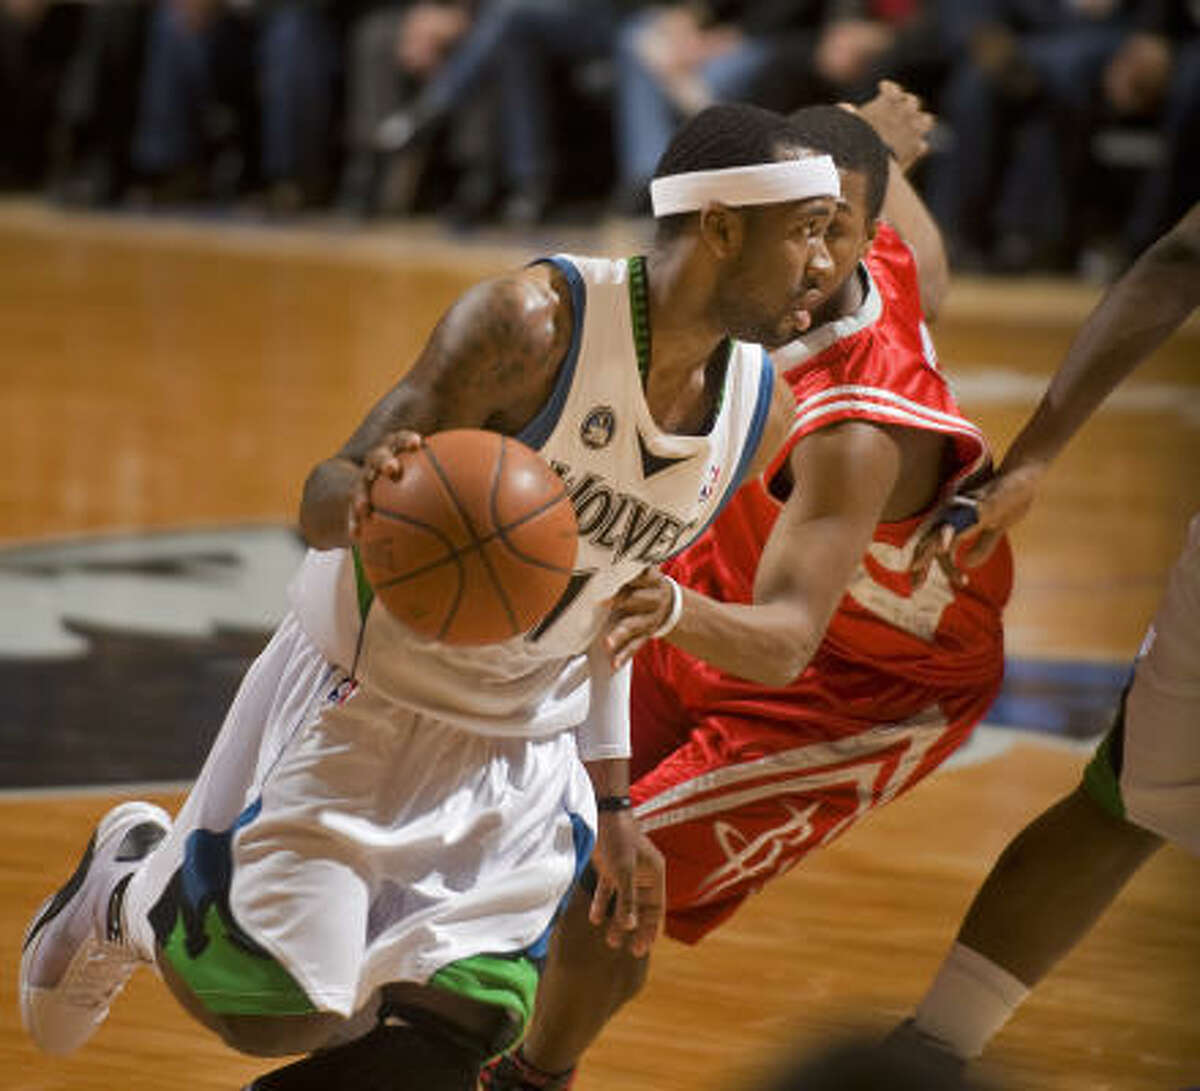 Timberwolves guard Bobby Brown drives past Kyle Lowry on his way to the basket in the third quarter.